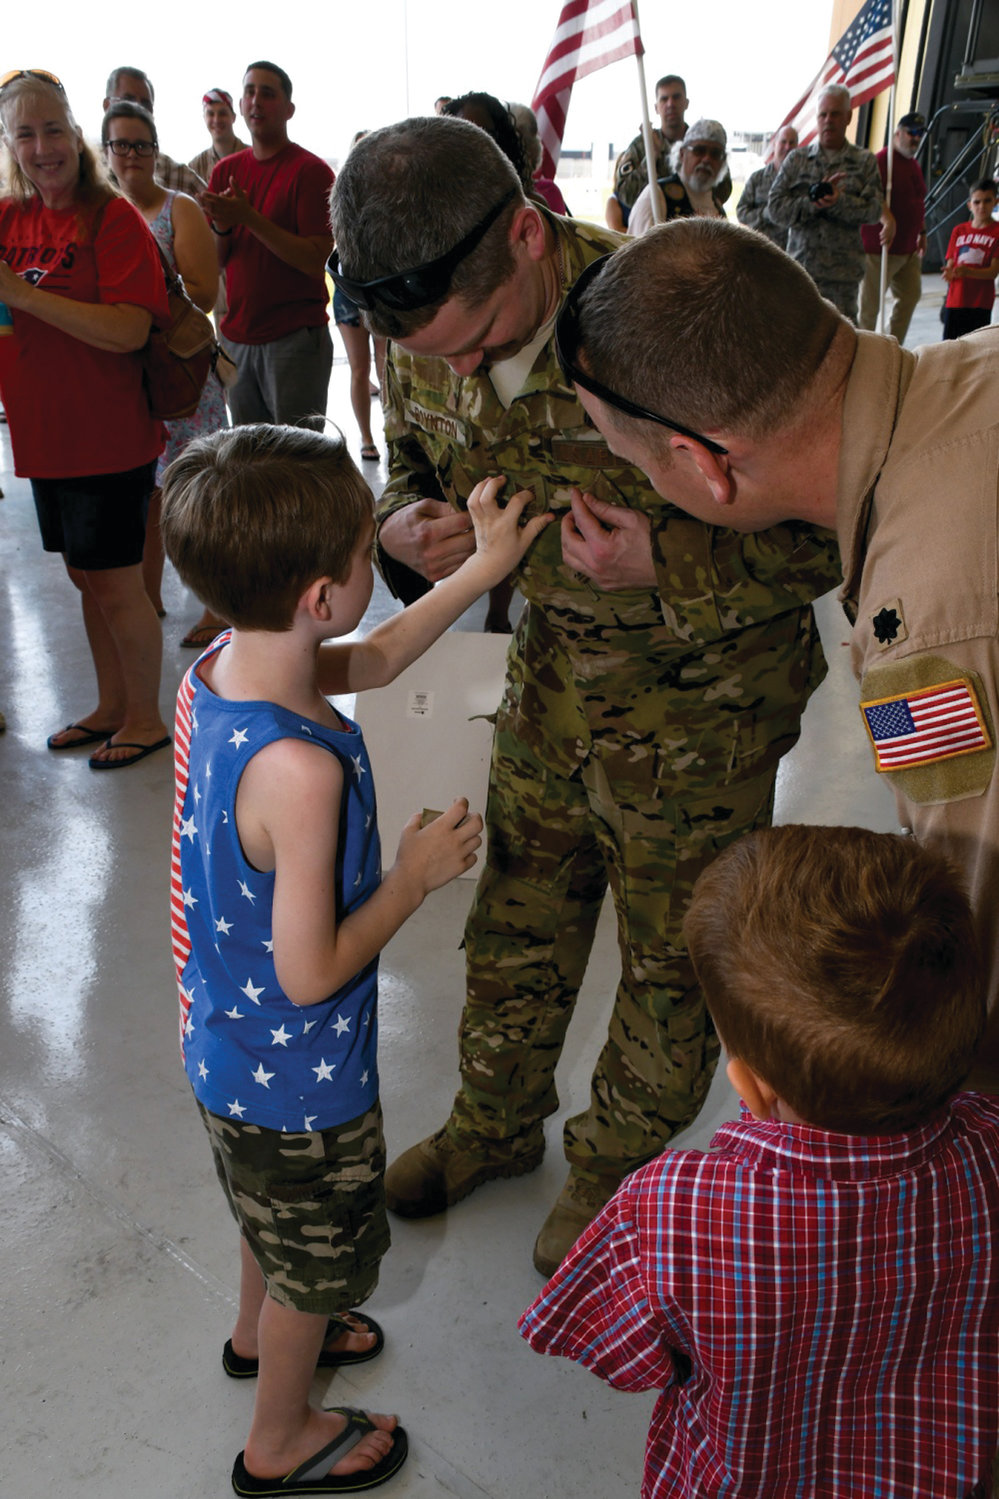 MOVING UP: Technical Sgt. Andrew M. Boynton from the 143d Airlift Wing of the Rhode Island Air National Guard was promoted to the rank of master sergeant during his return from deployment on July 5.